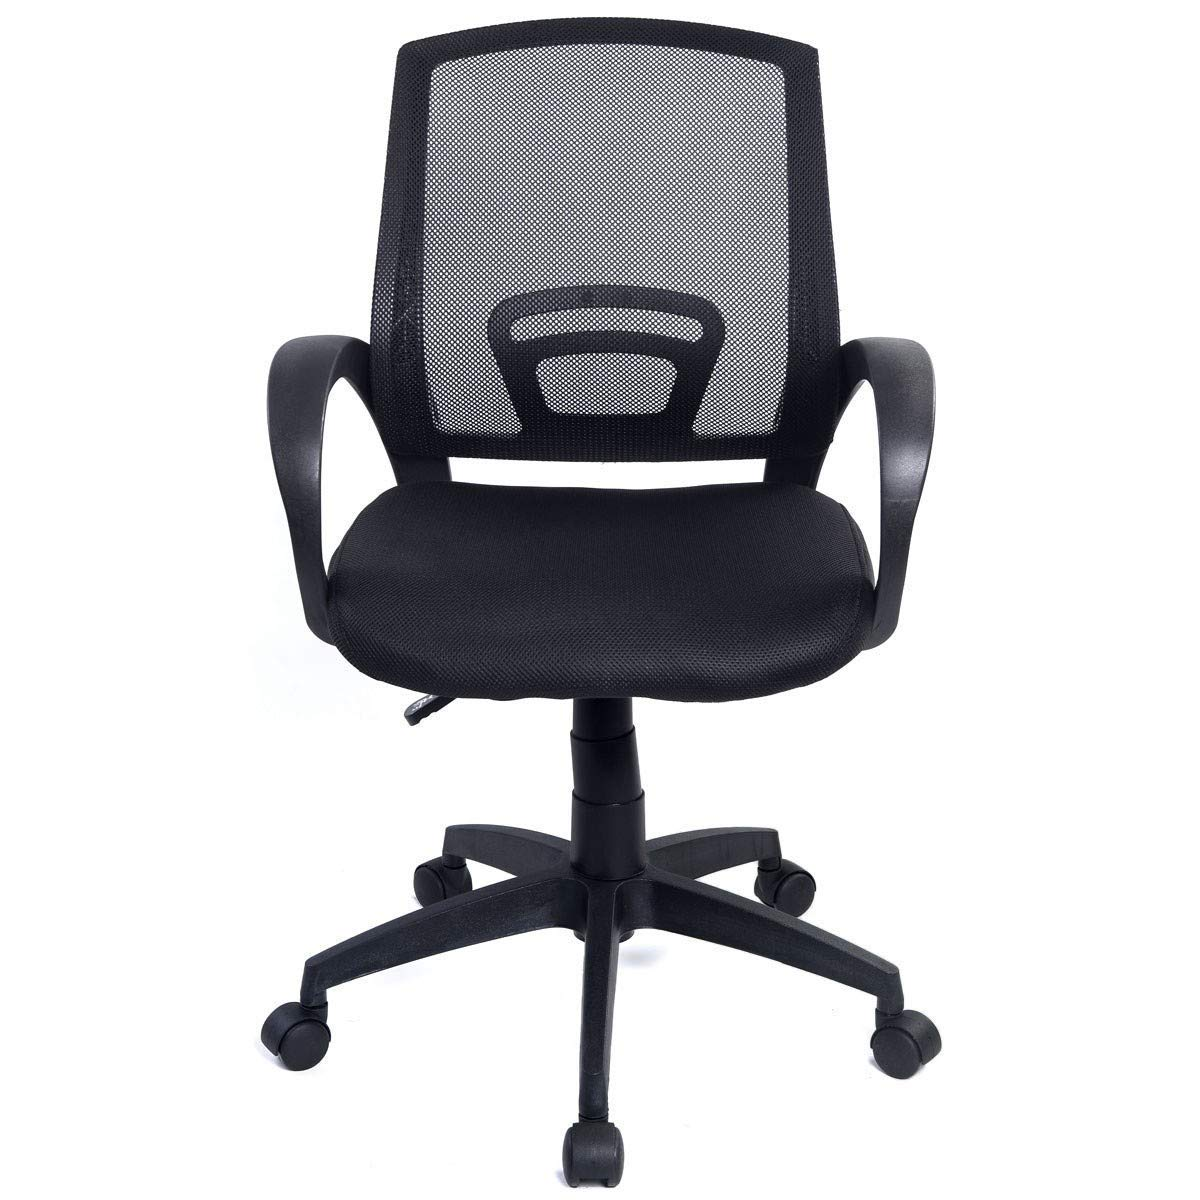 Ergonomic Mesh Computer Office Chair Chair Ergonomic Computer Office Massage Vibrating Executive Heated Desk 6 Leather Pu Racing Game New Home Race Point Black Car BESTChoiceForYou